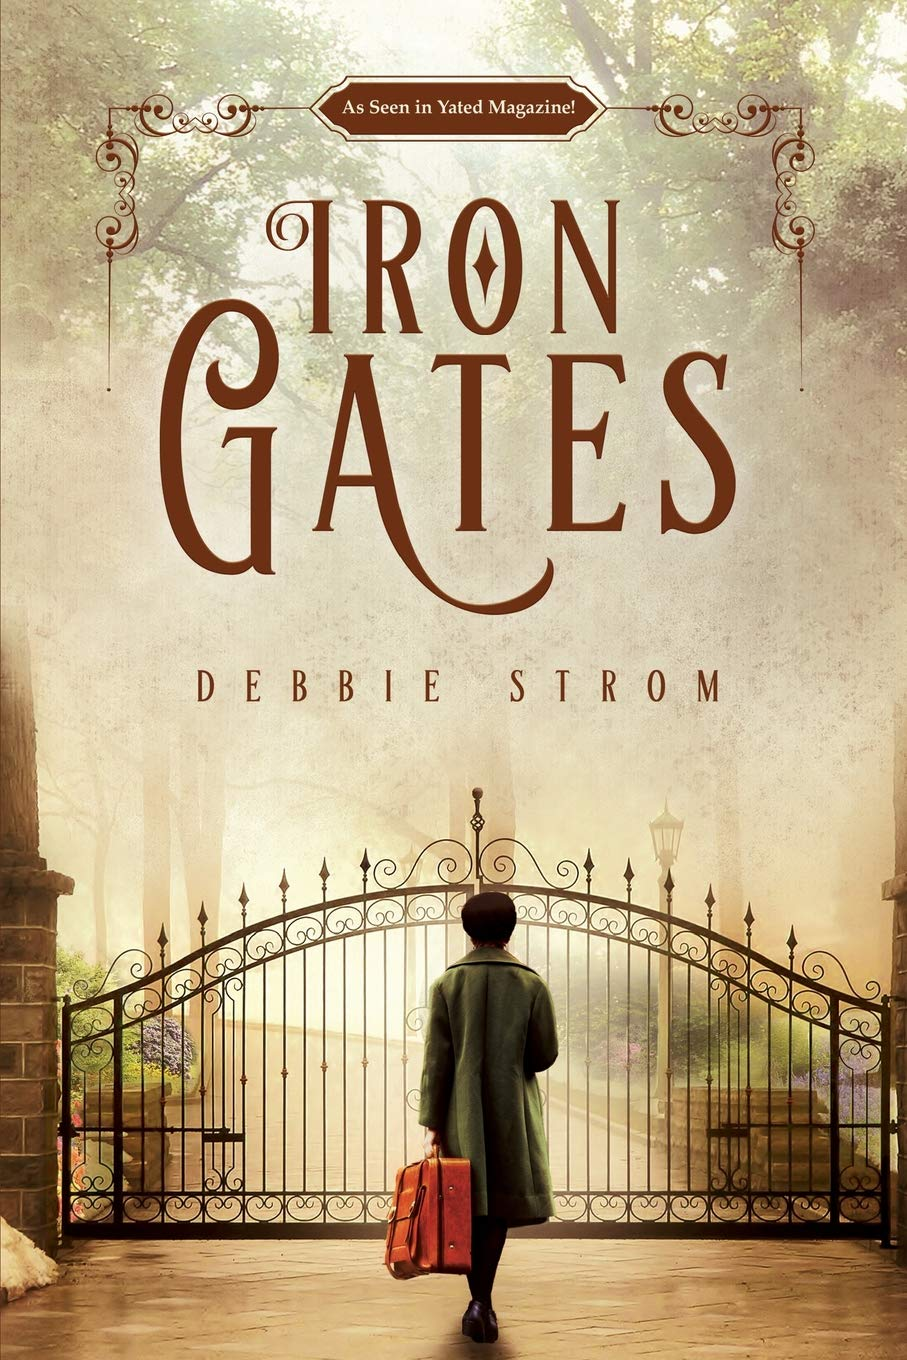 Iron Gates by Debbie Strom